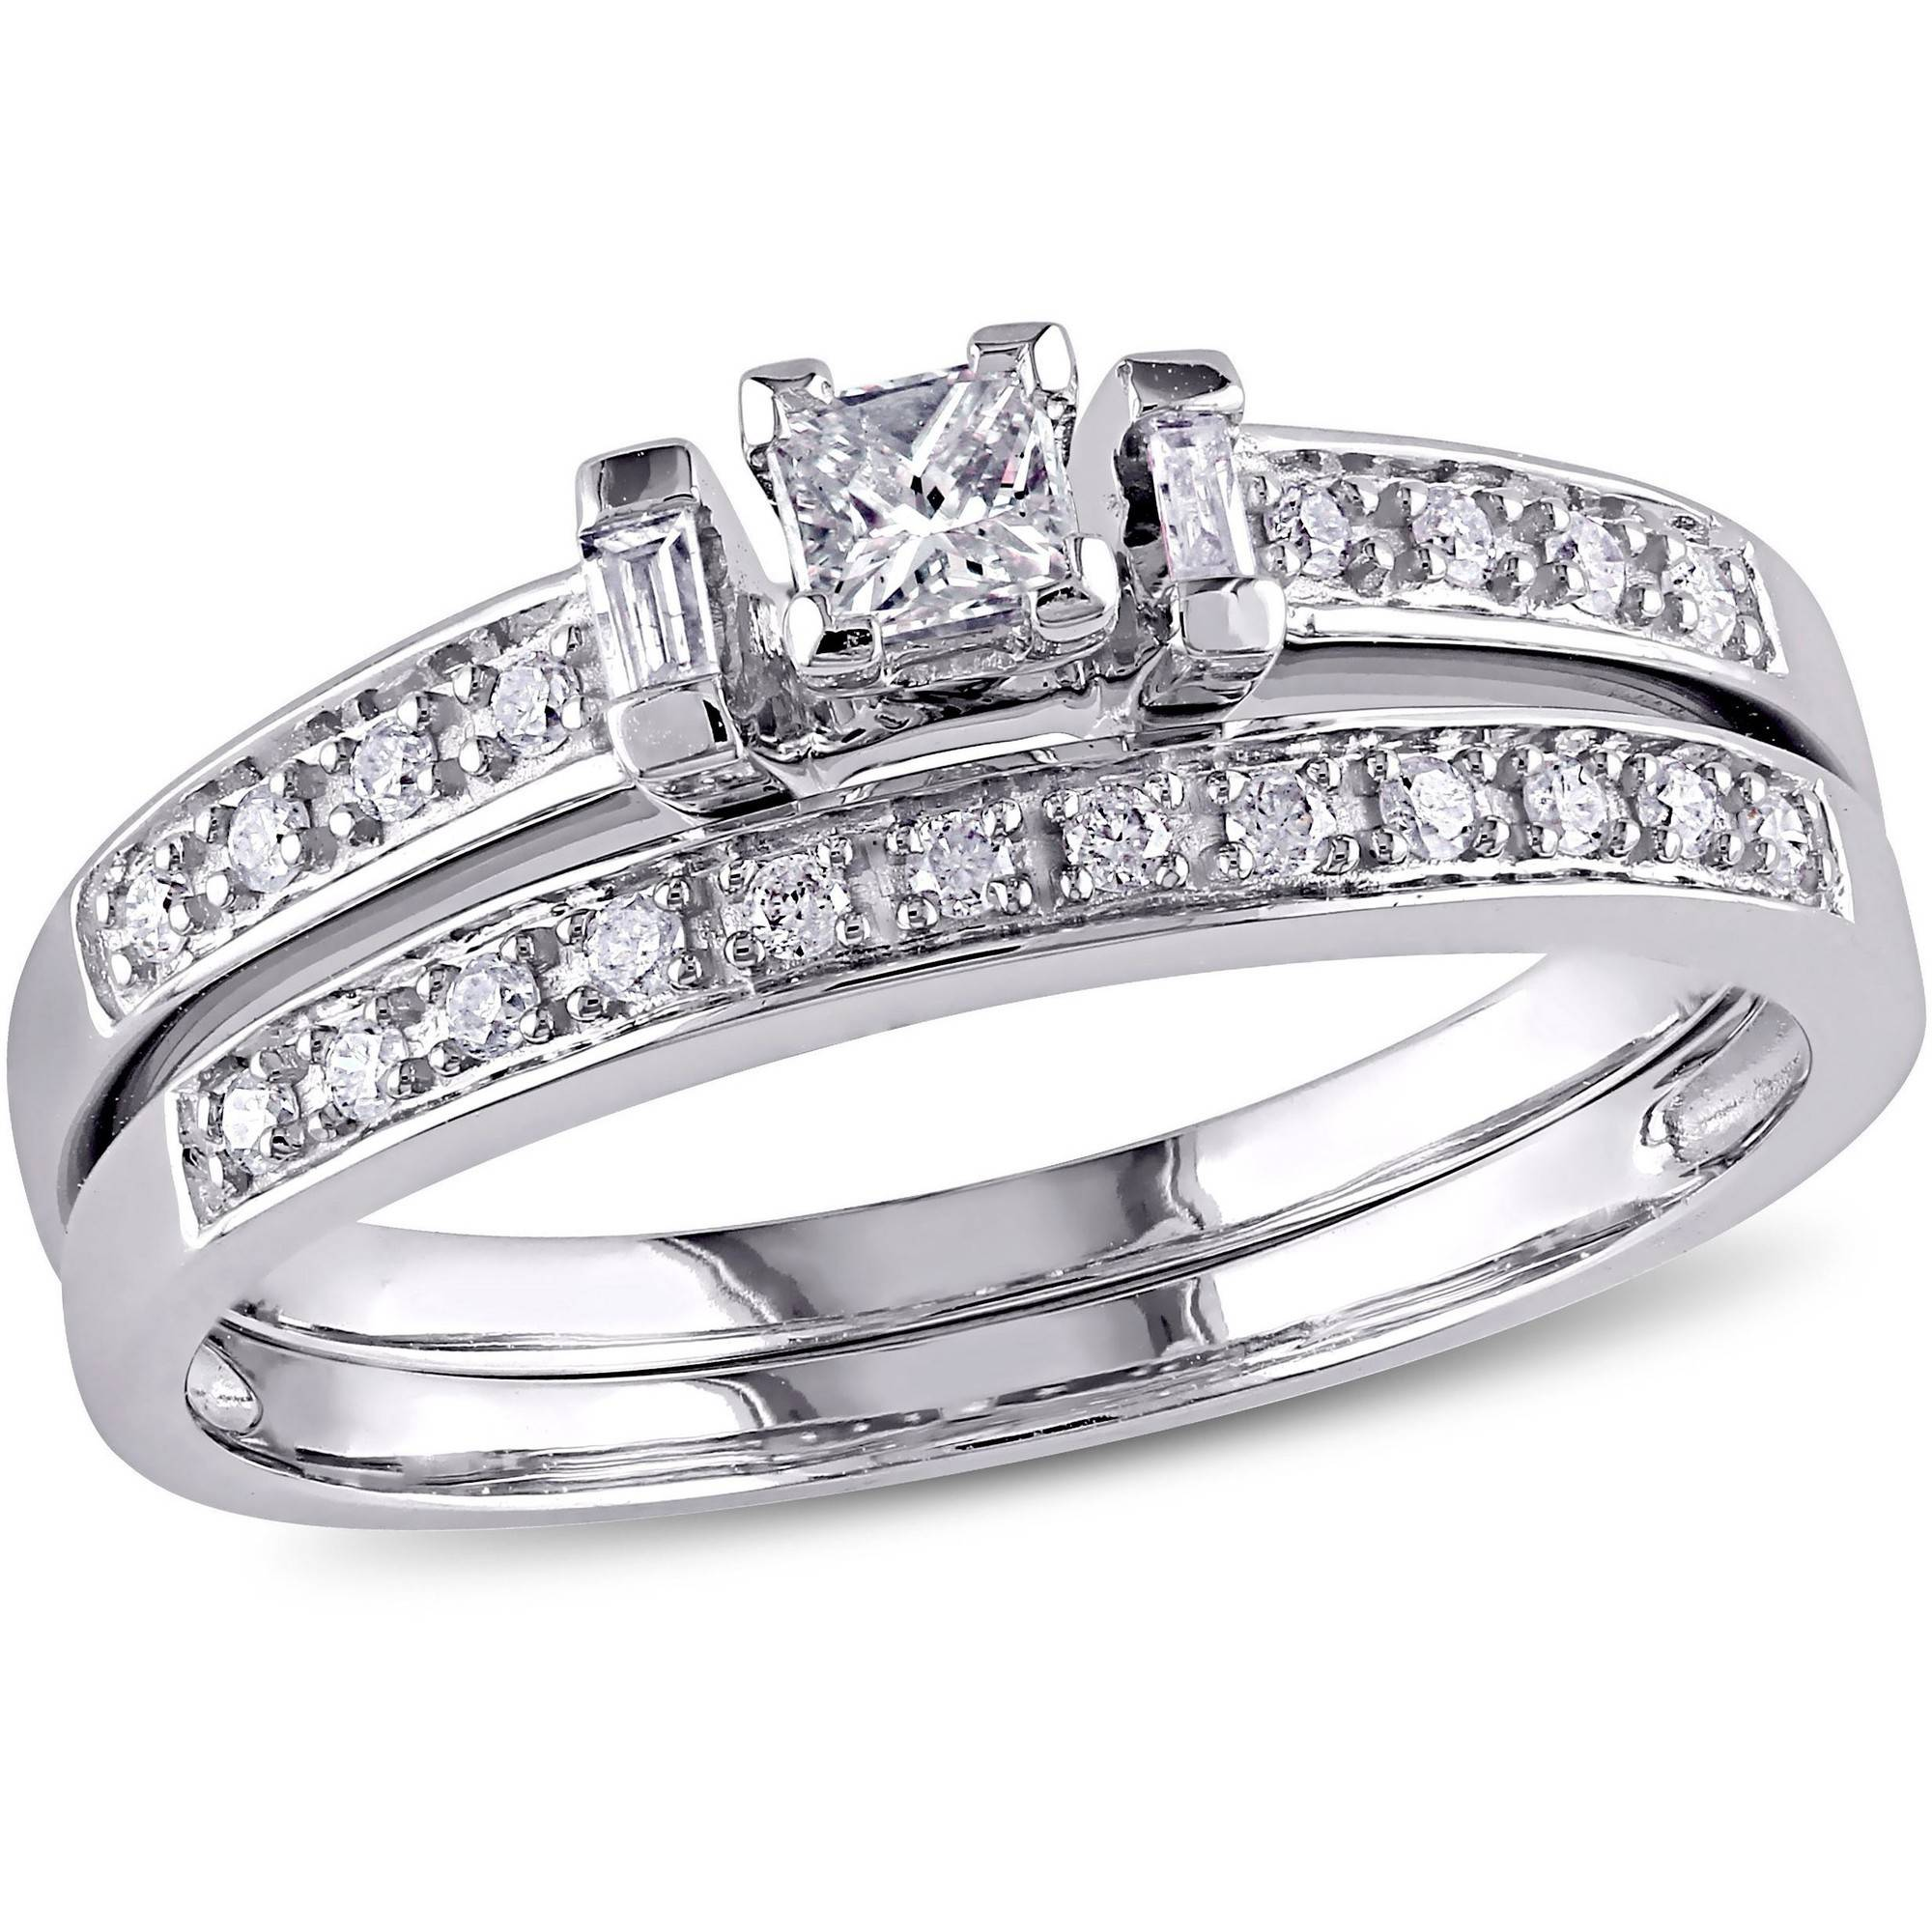 1/3 Carat T.W. Princess, Baguette and Round-Cut Diamond Bridal Set in 10kt White Gold